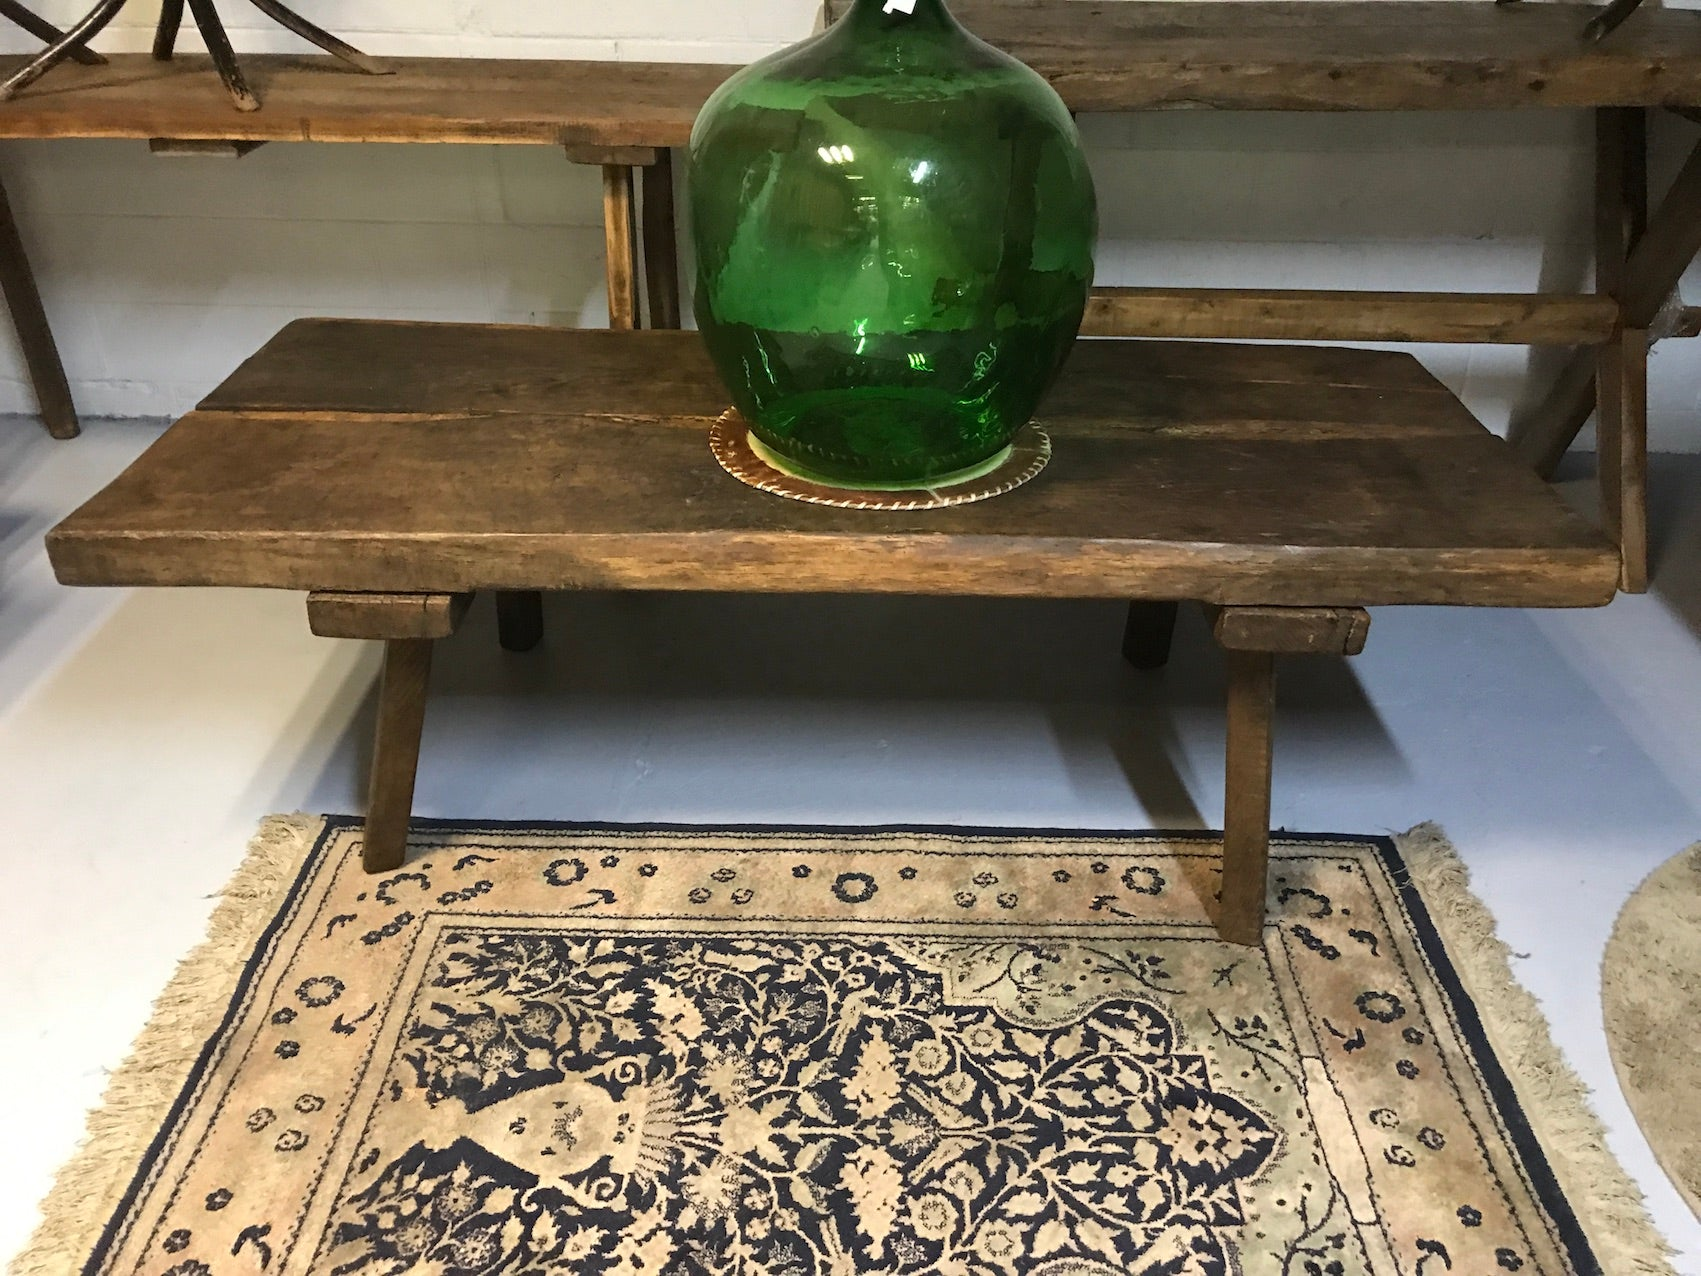 Vintage industrial European console wooden coffee table #2074